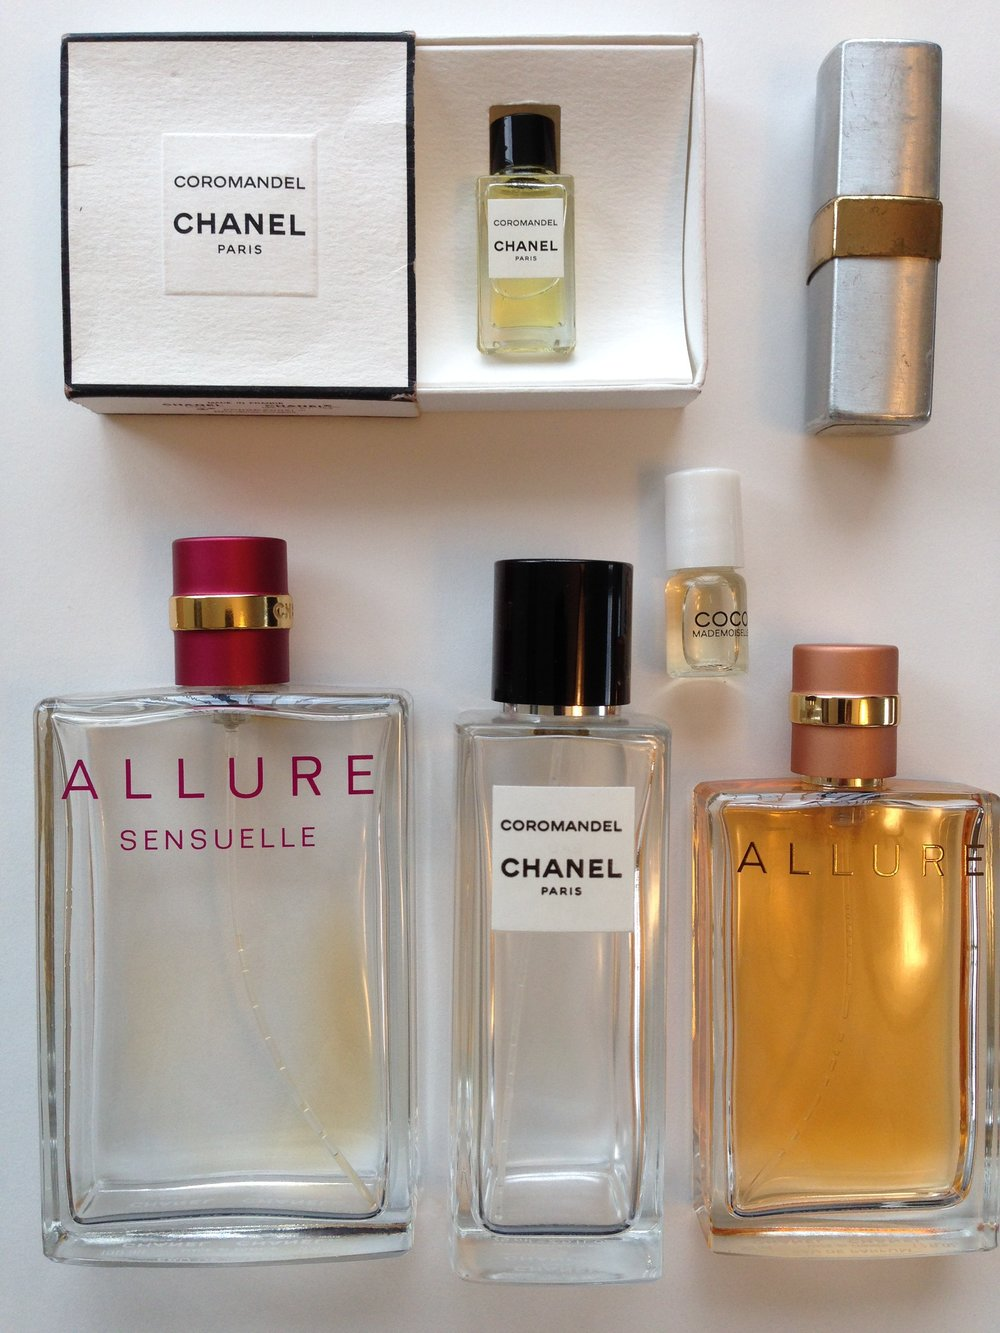 Some gone, but not forgotten - my love affair with Chanel perfumes continues.   Photo credit:  Heather Phillips